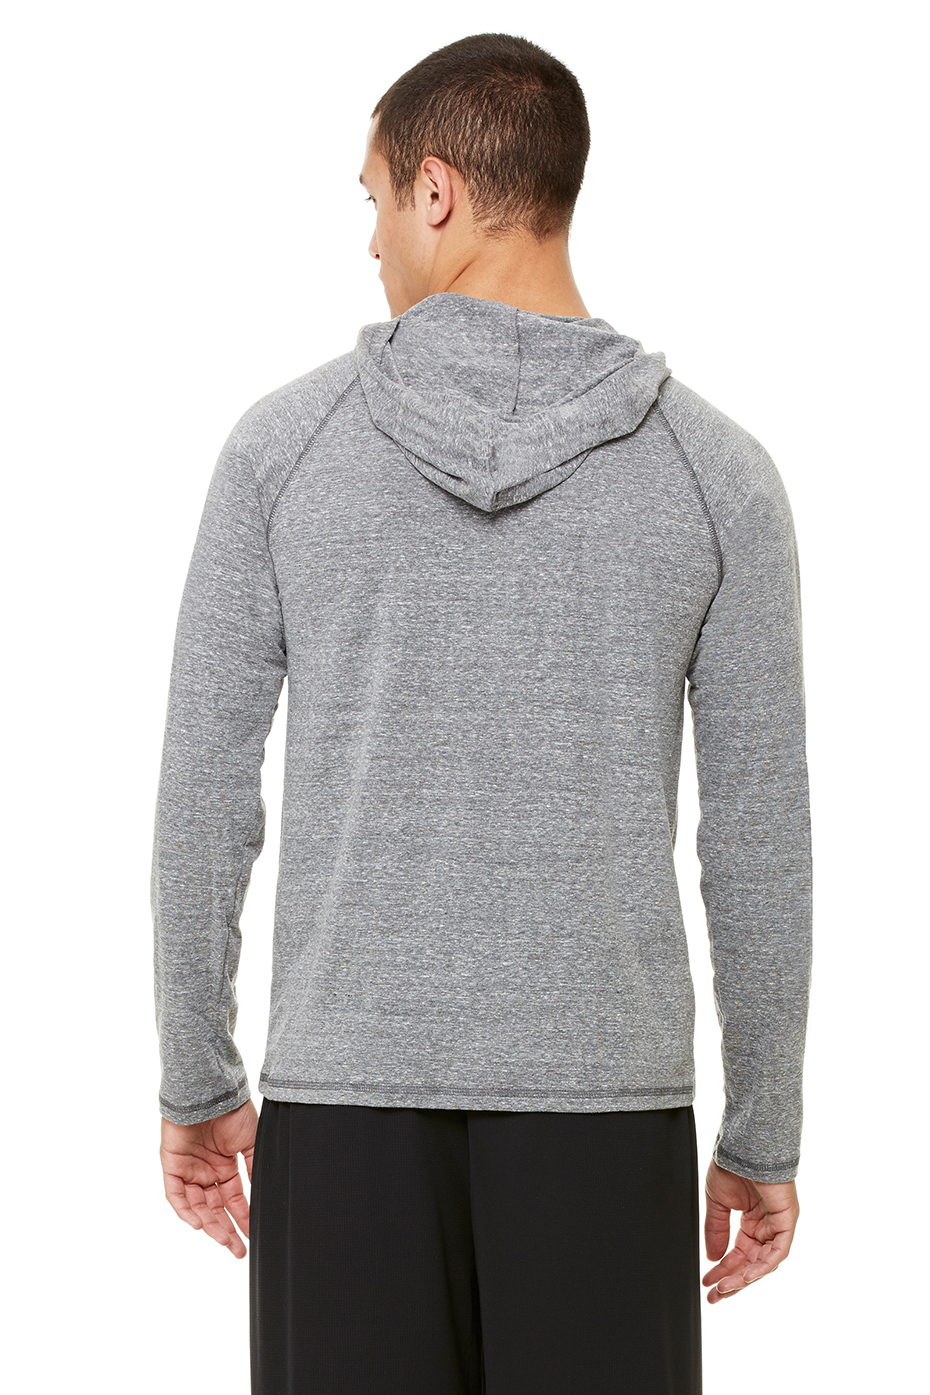 Top of the World Mens Premium Triblend Gray Heather Long Sleeve Hoodie Tee